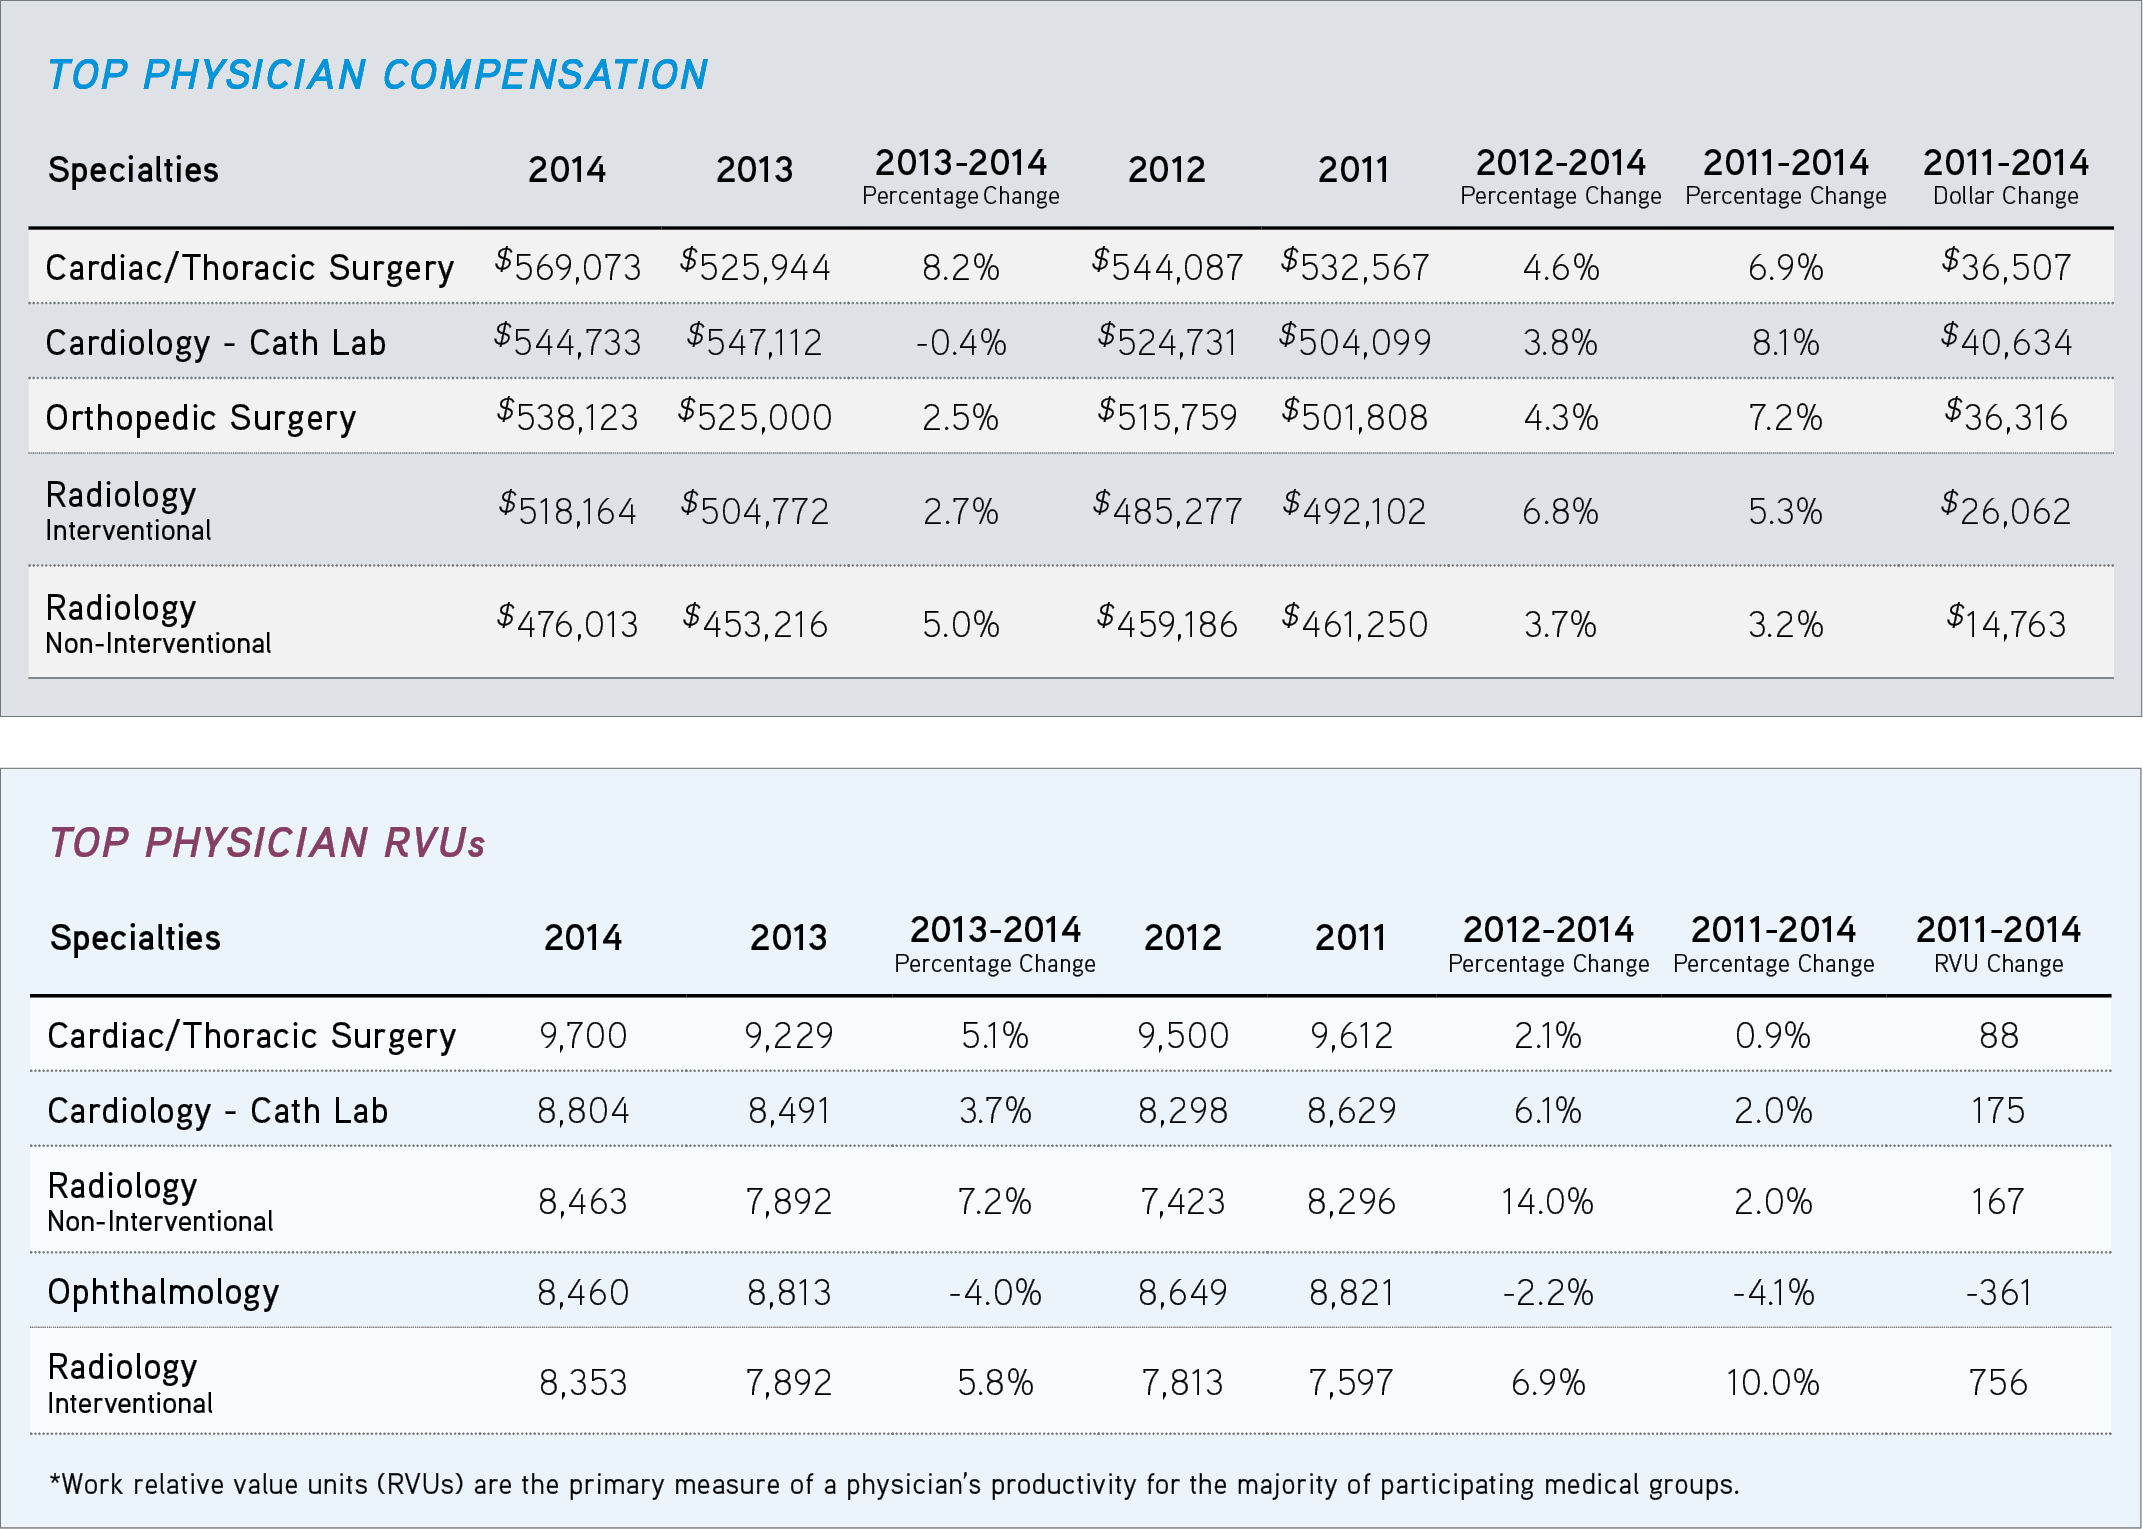 American Medical Group Association (AMGA) 2014 Medical Group Compensation and Financial Survey: 2014 Report based on 2013 data